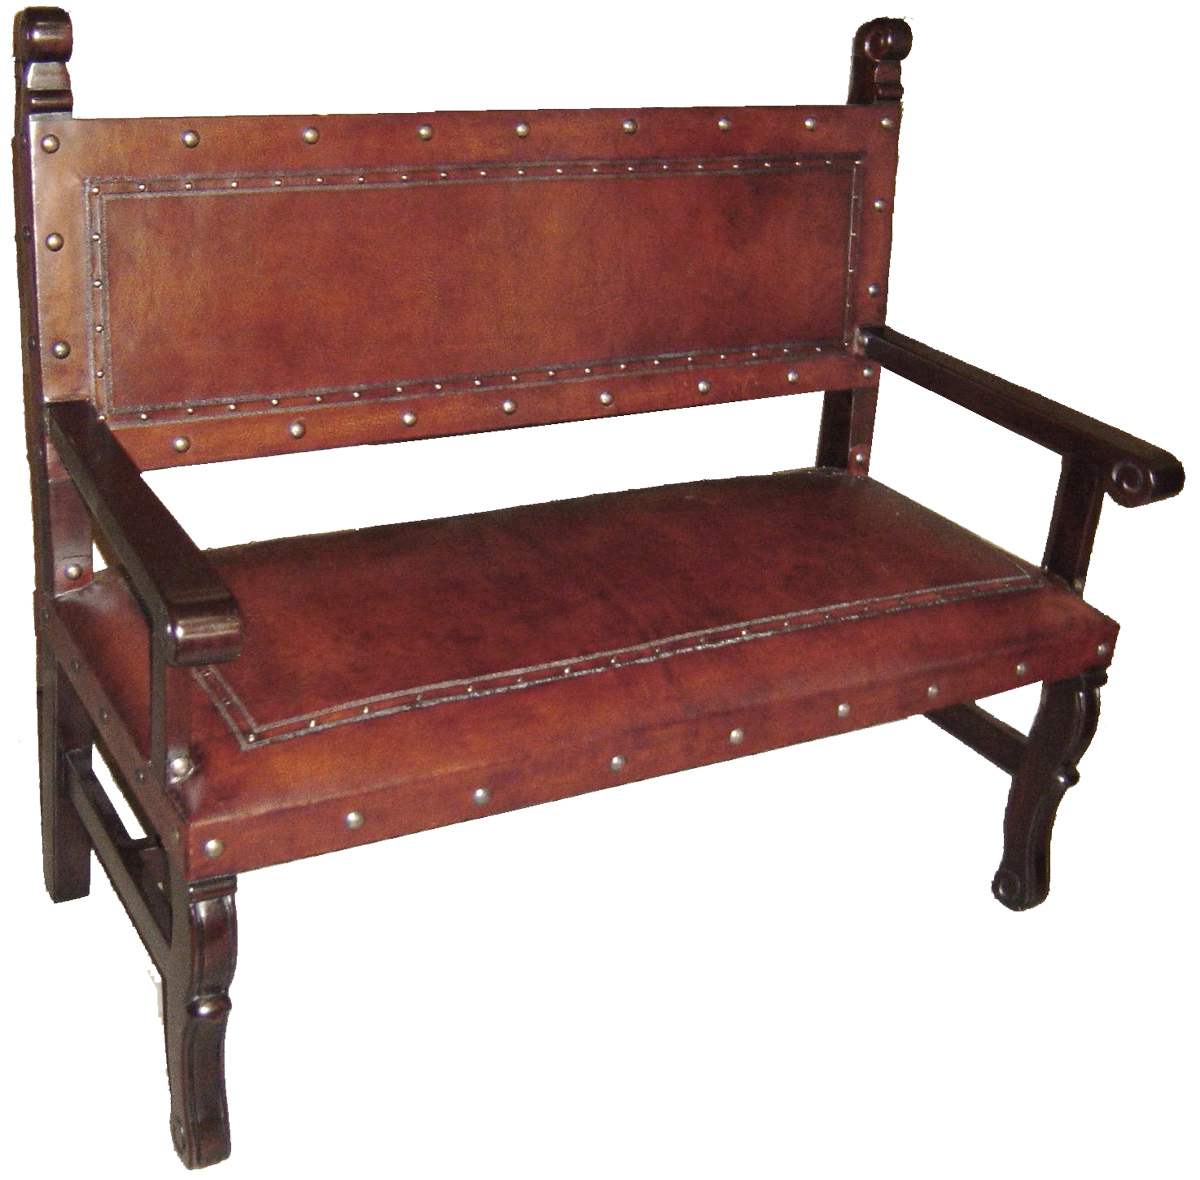 Spanish Heritage Bench - Antique Brown